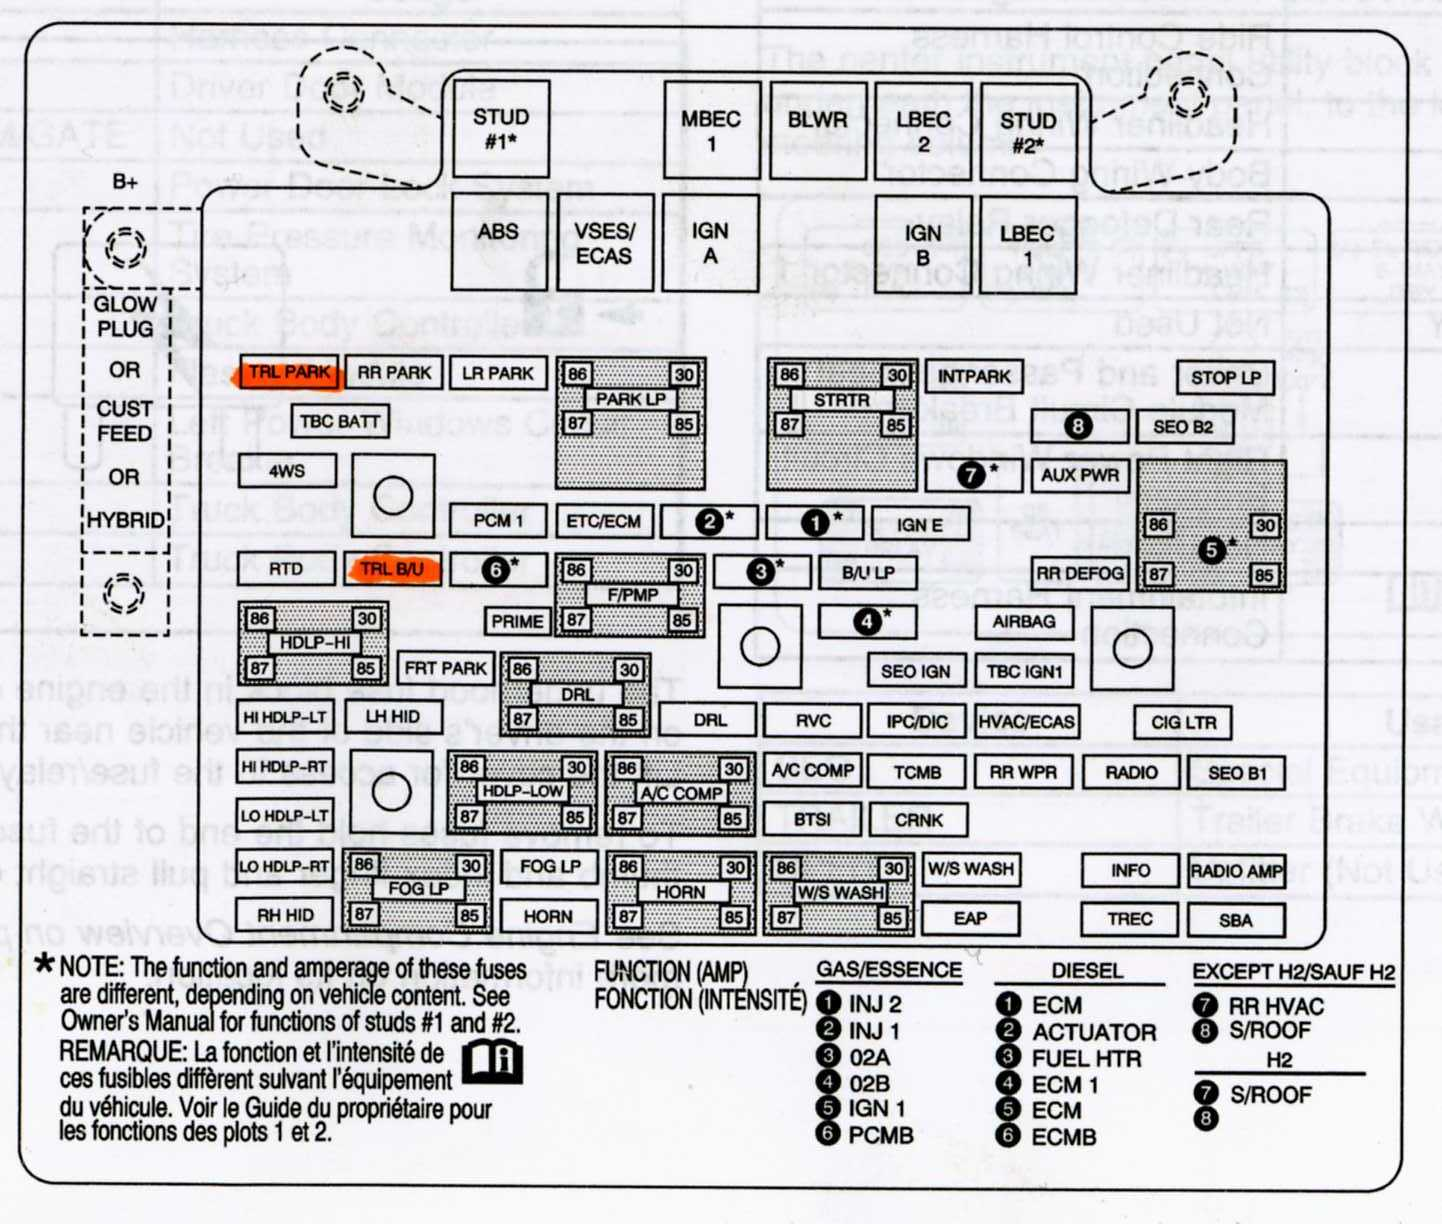 2005 Tahoe Fuse Diagram Another Blog About Wiring Avalanche Box For 2007